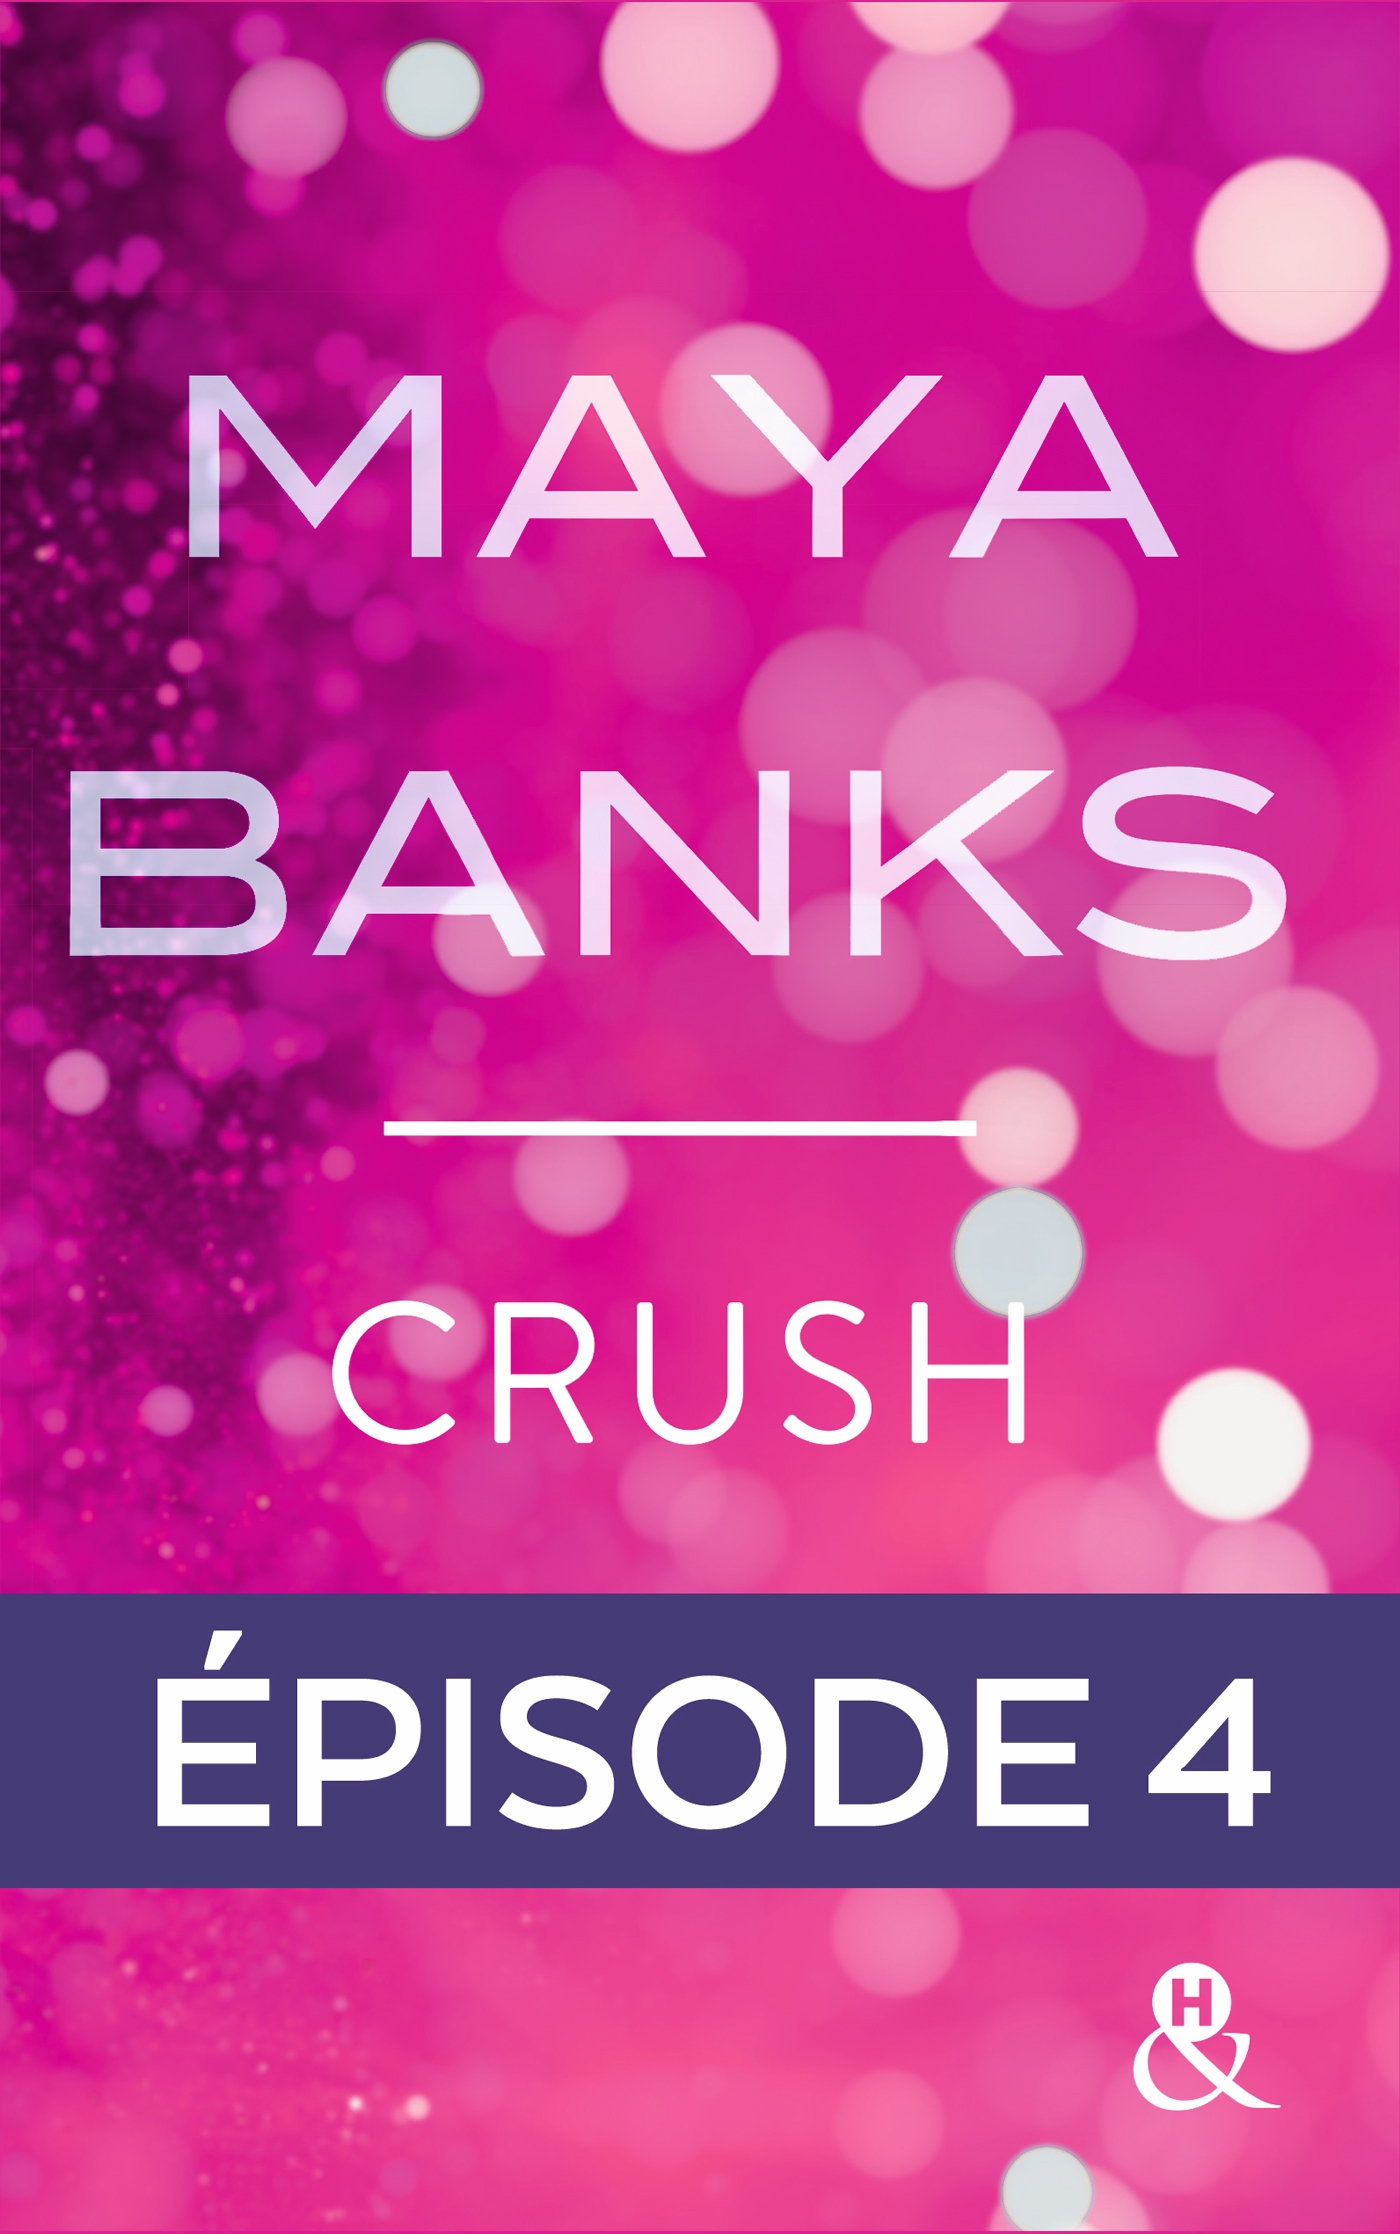 Crush - Episode 4